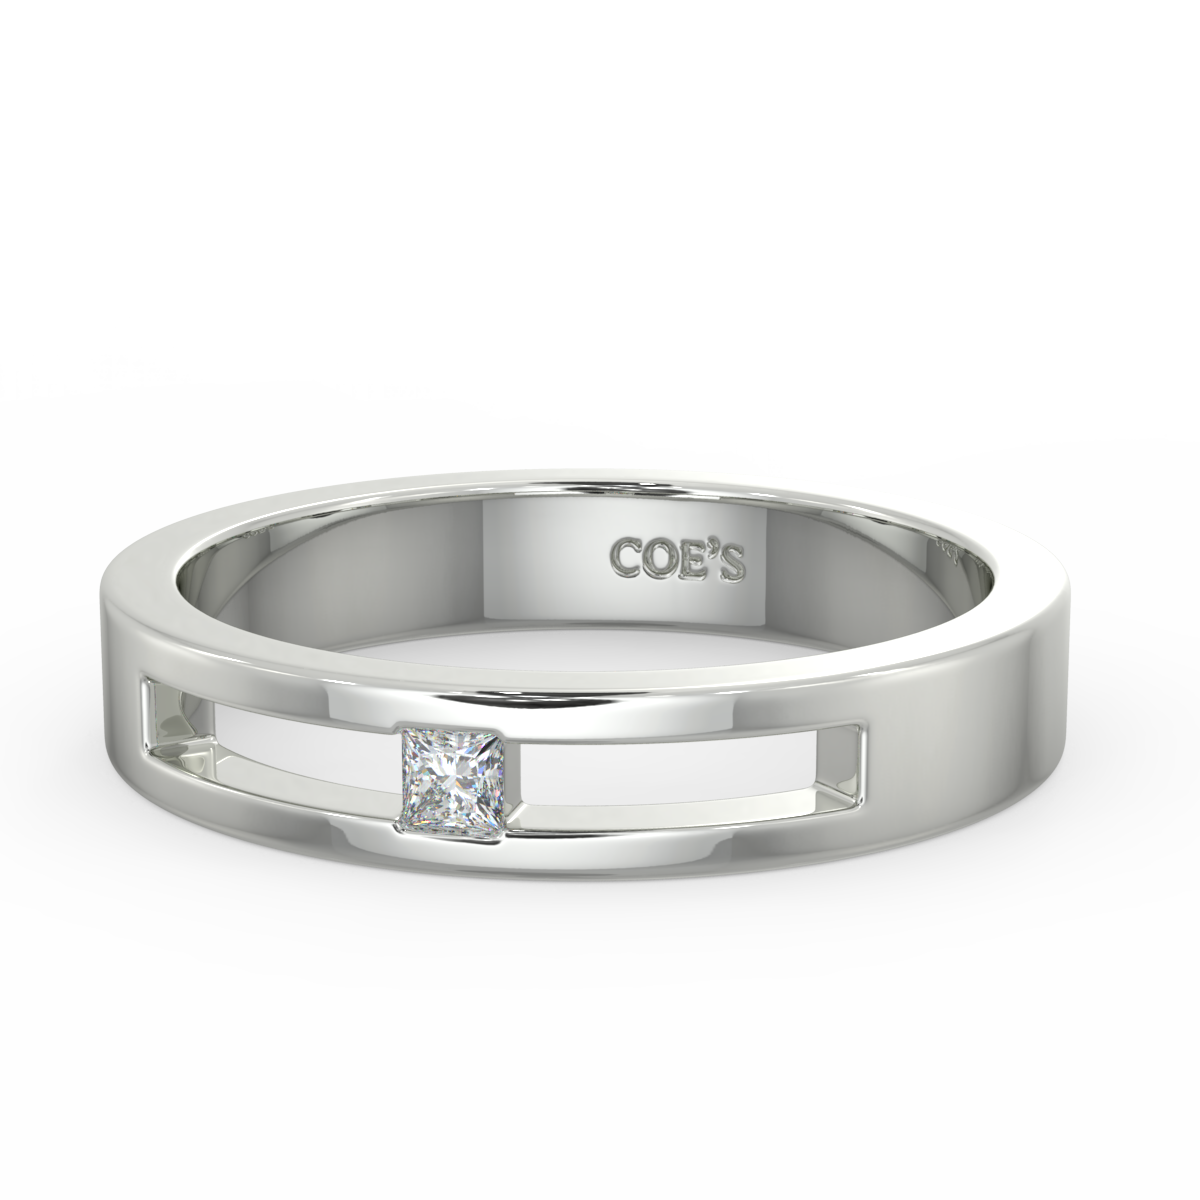 Christian - Mens diamond set wedding band